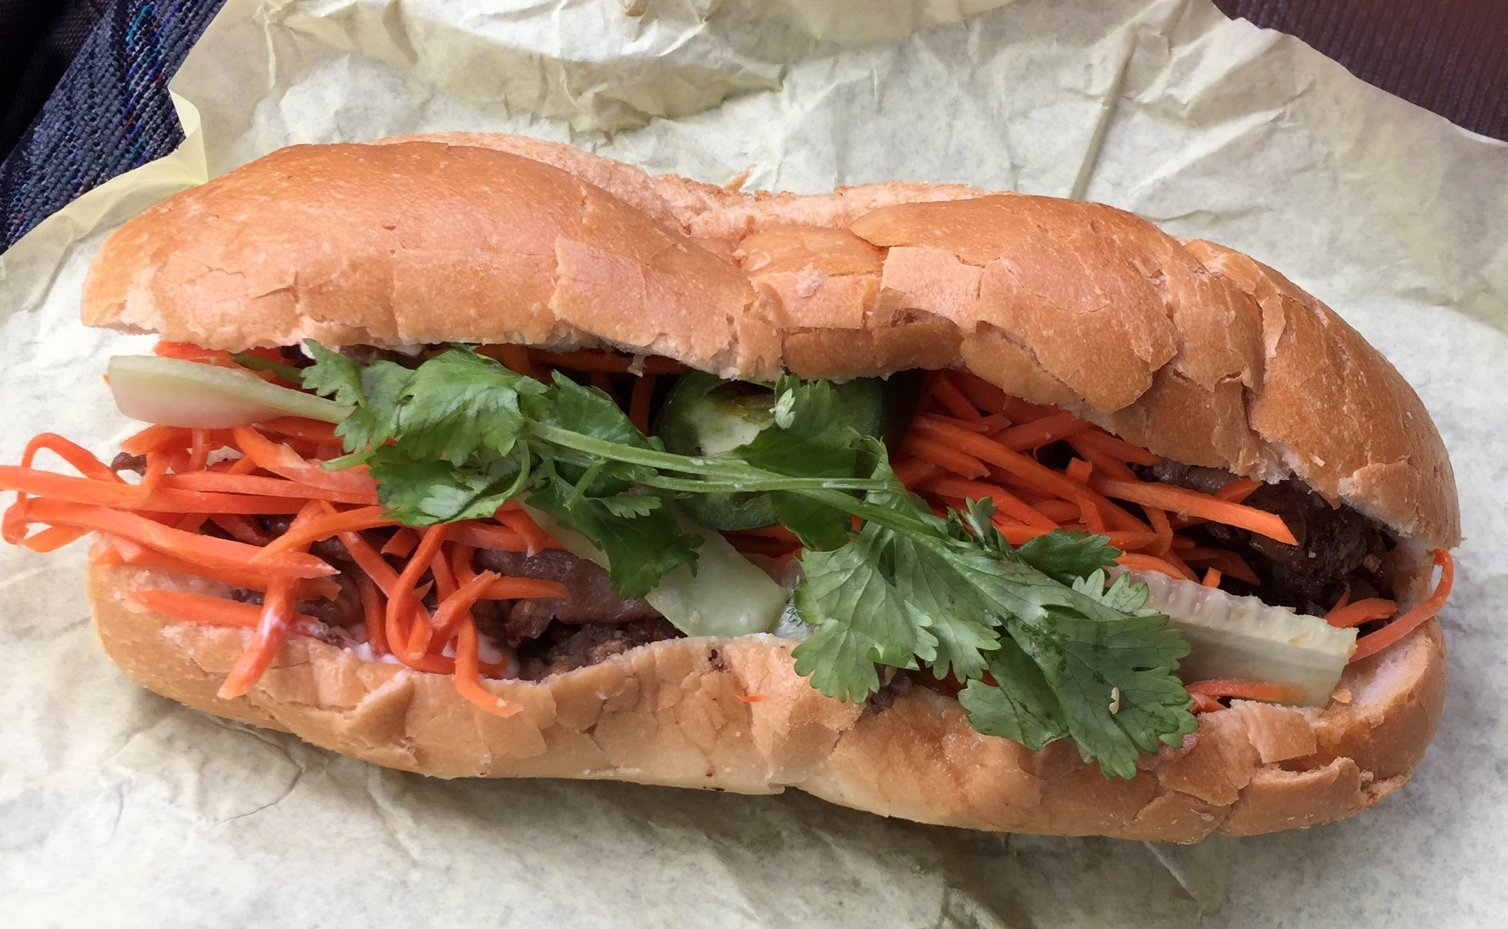 The name Yummy Banh Mi is accurate.